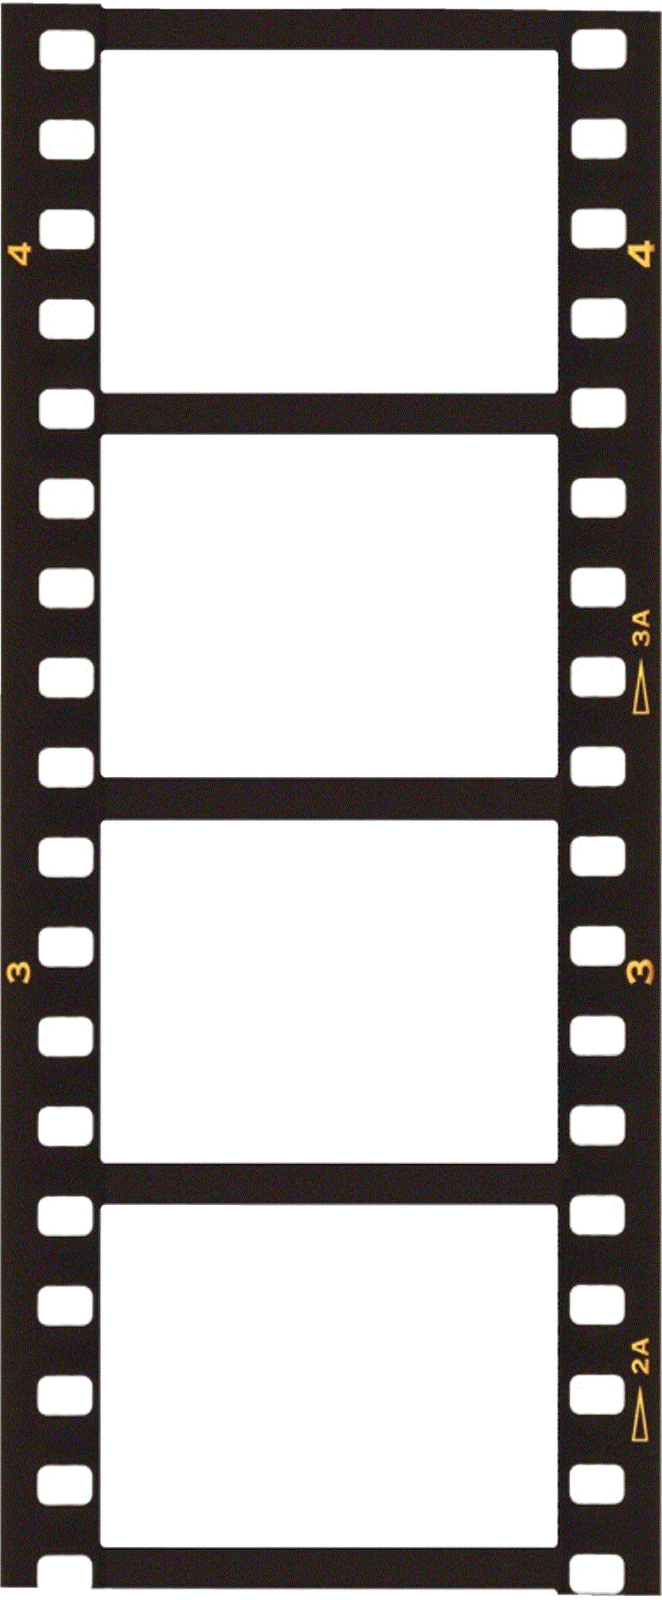 Amusing answer Film strip layouts right!